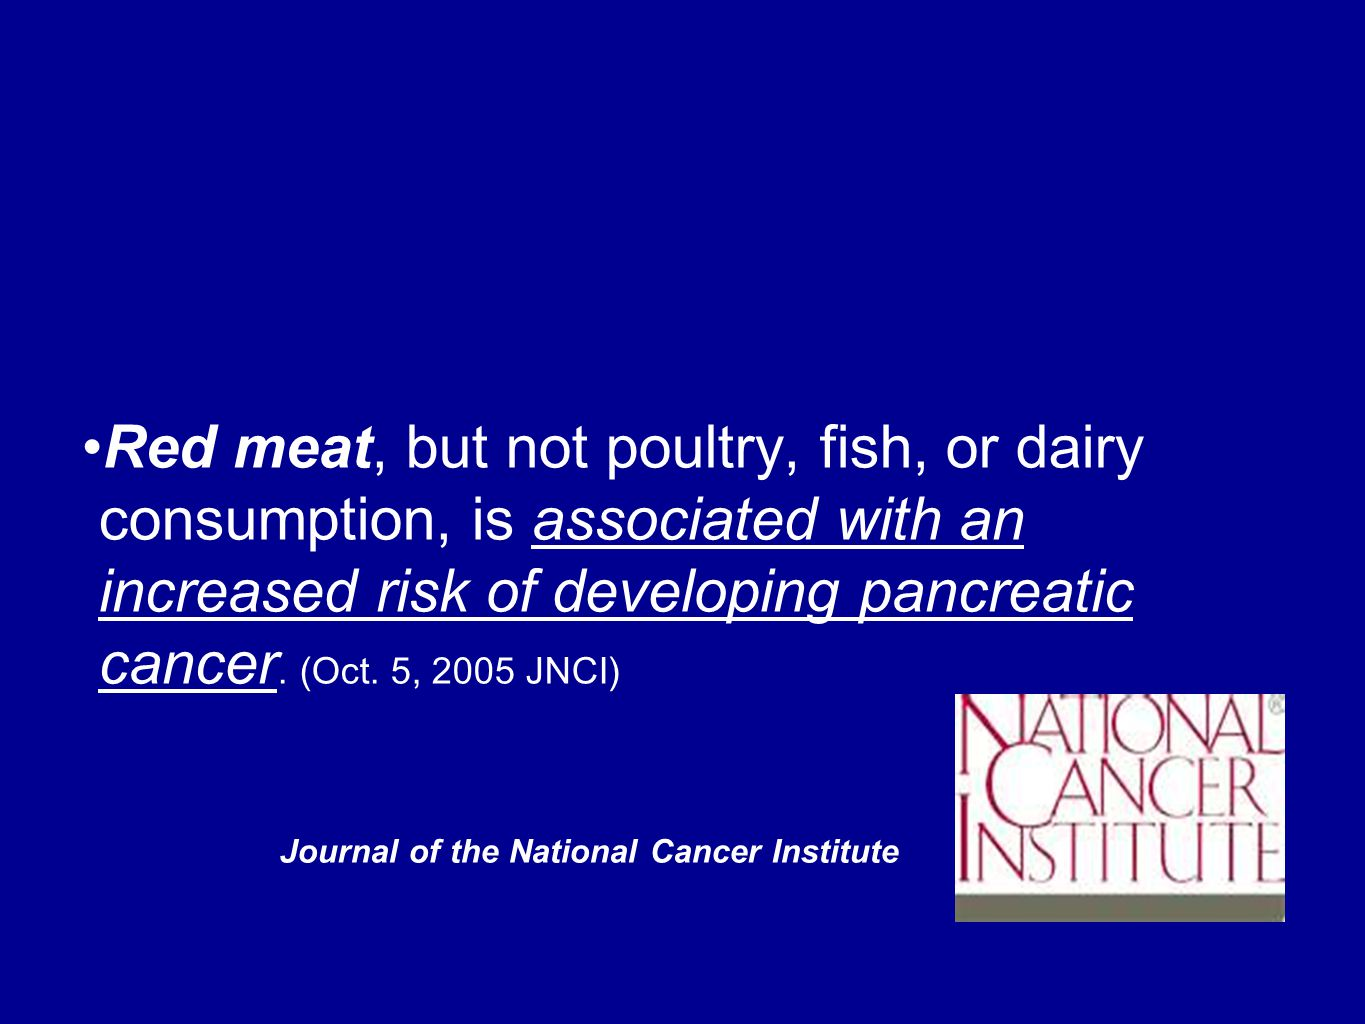 Journal of the National Cancer Institute Red meat, but not poultry, fish, or dairy consumption, is associated with an increased risk of developing pancreatic cancer.